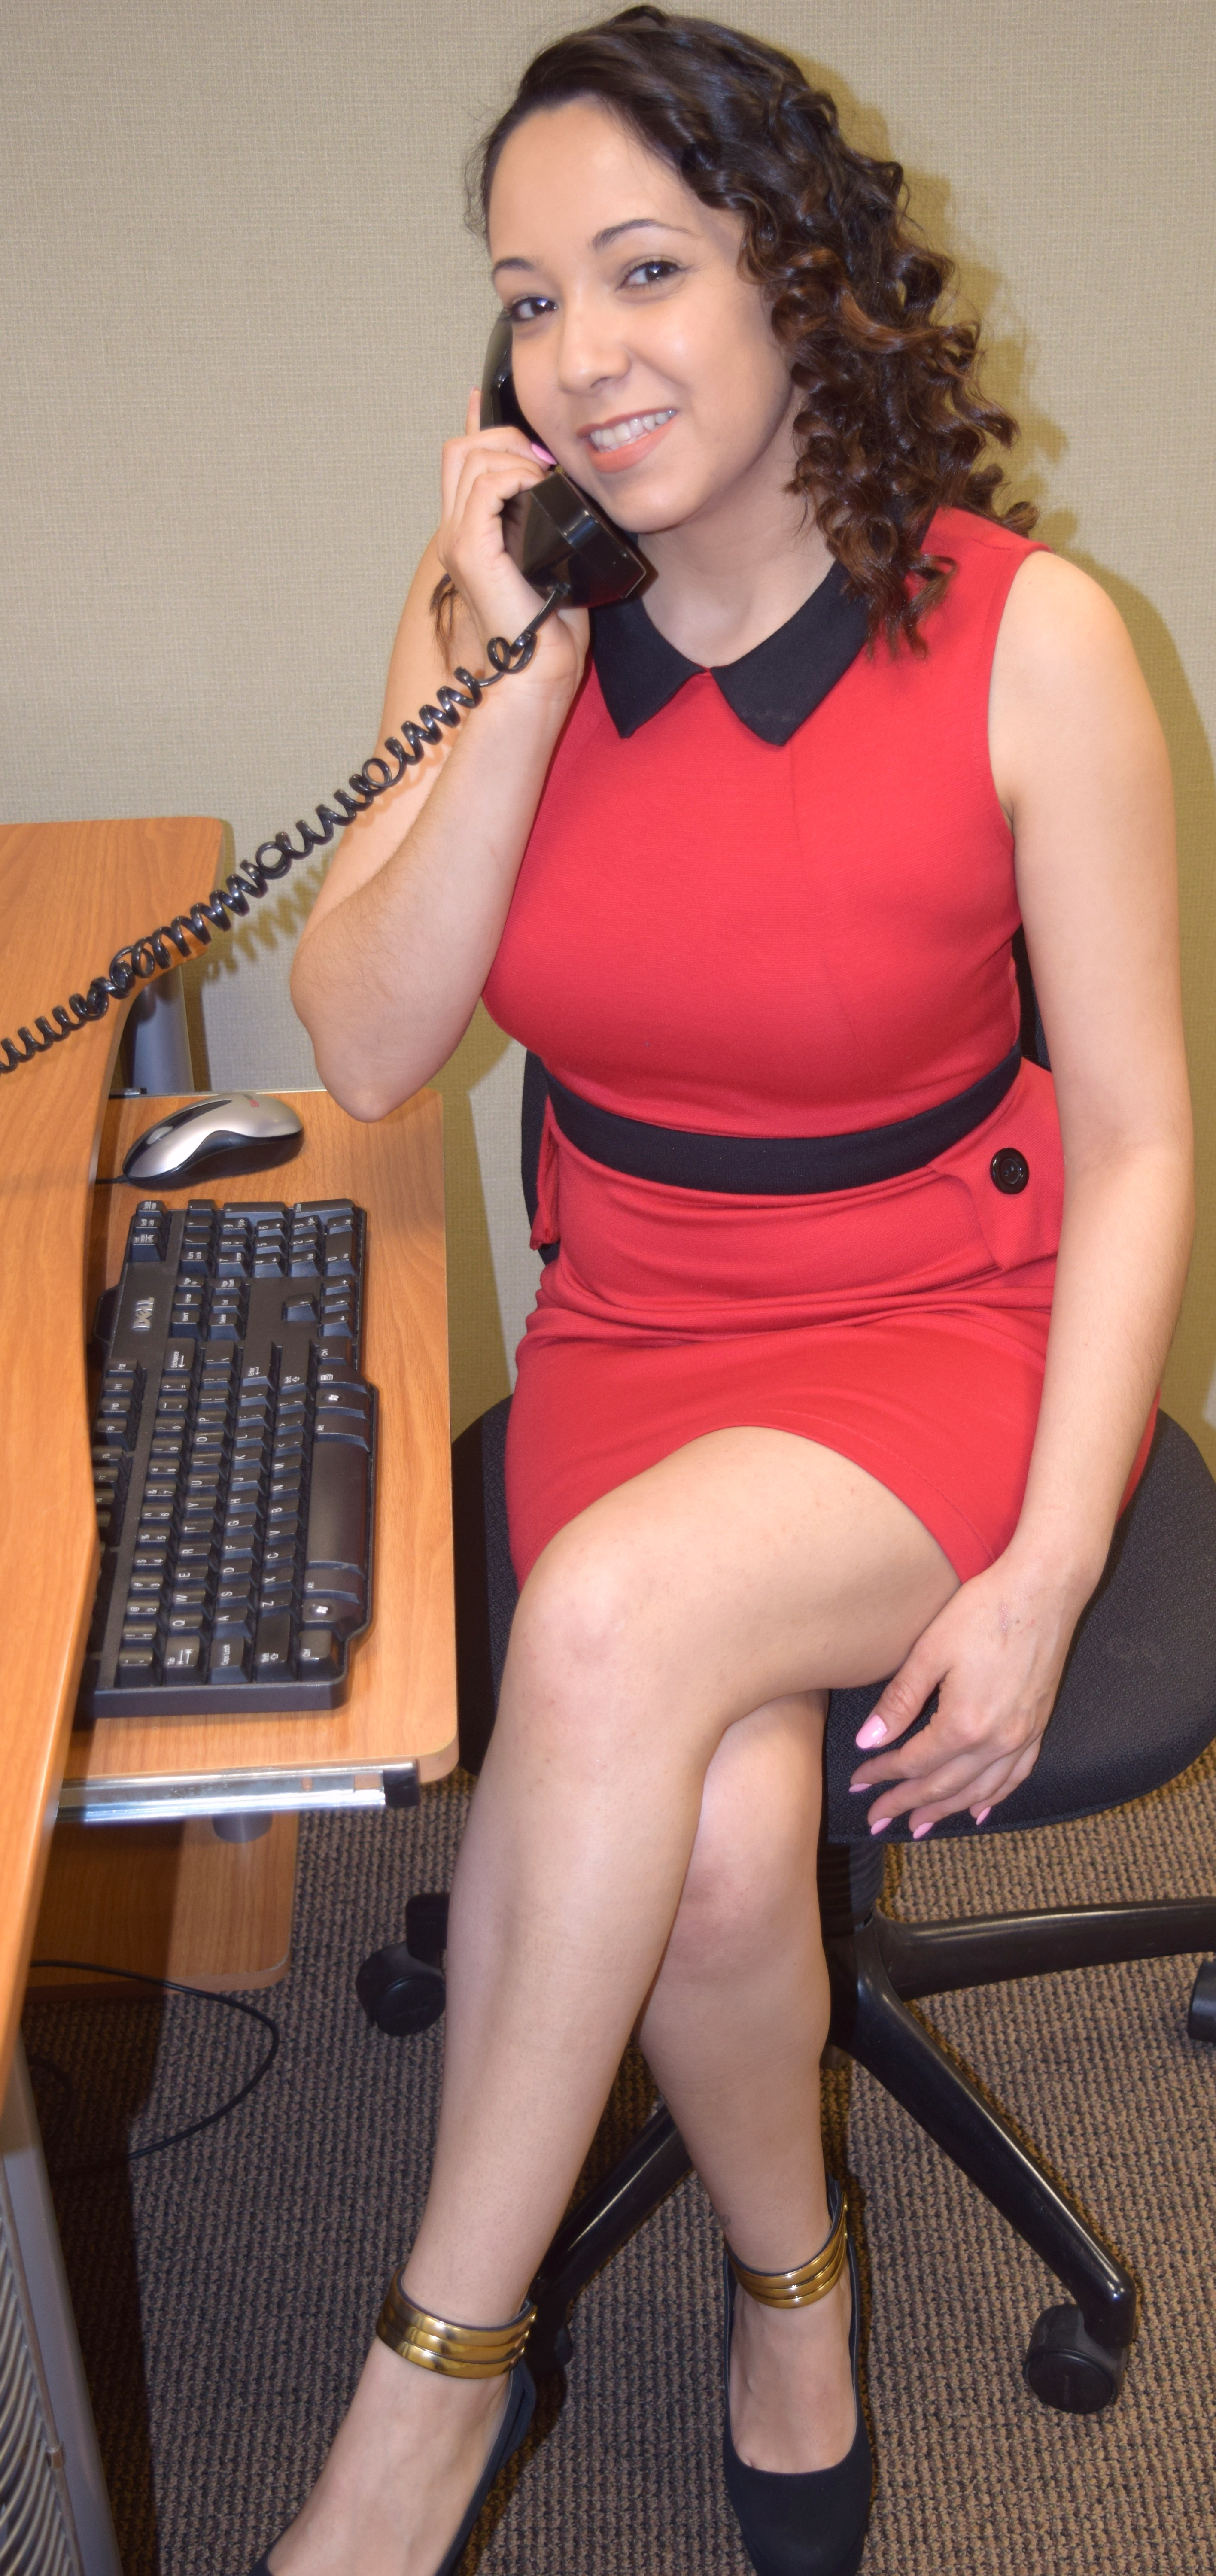 A red dress alice munro the office